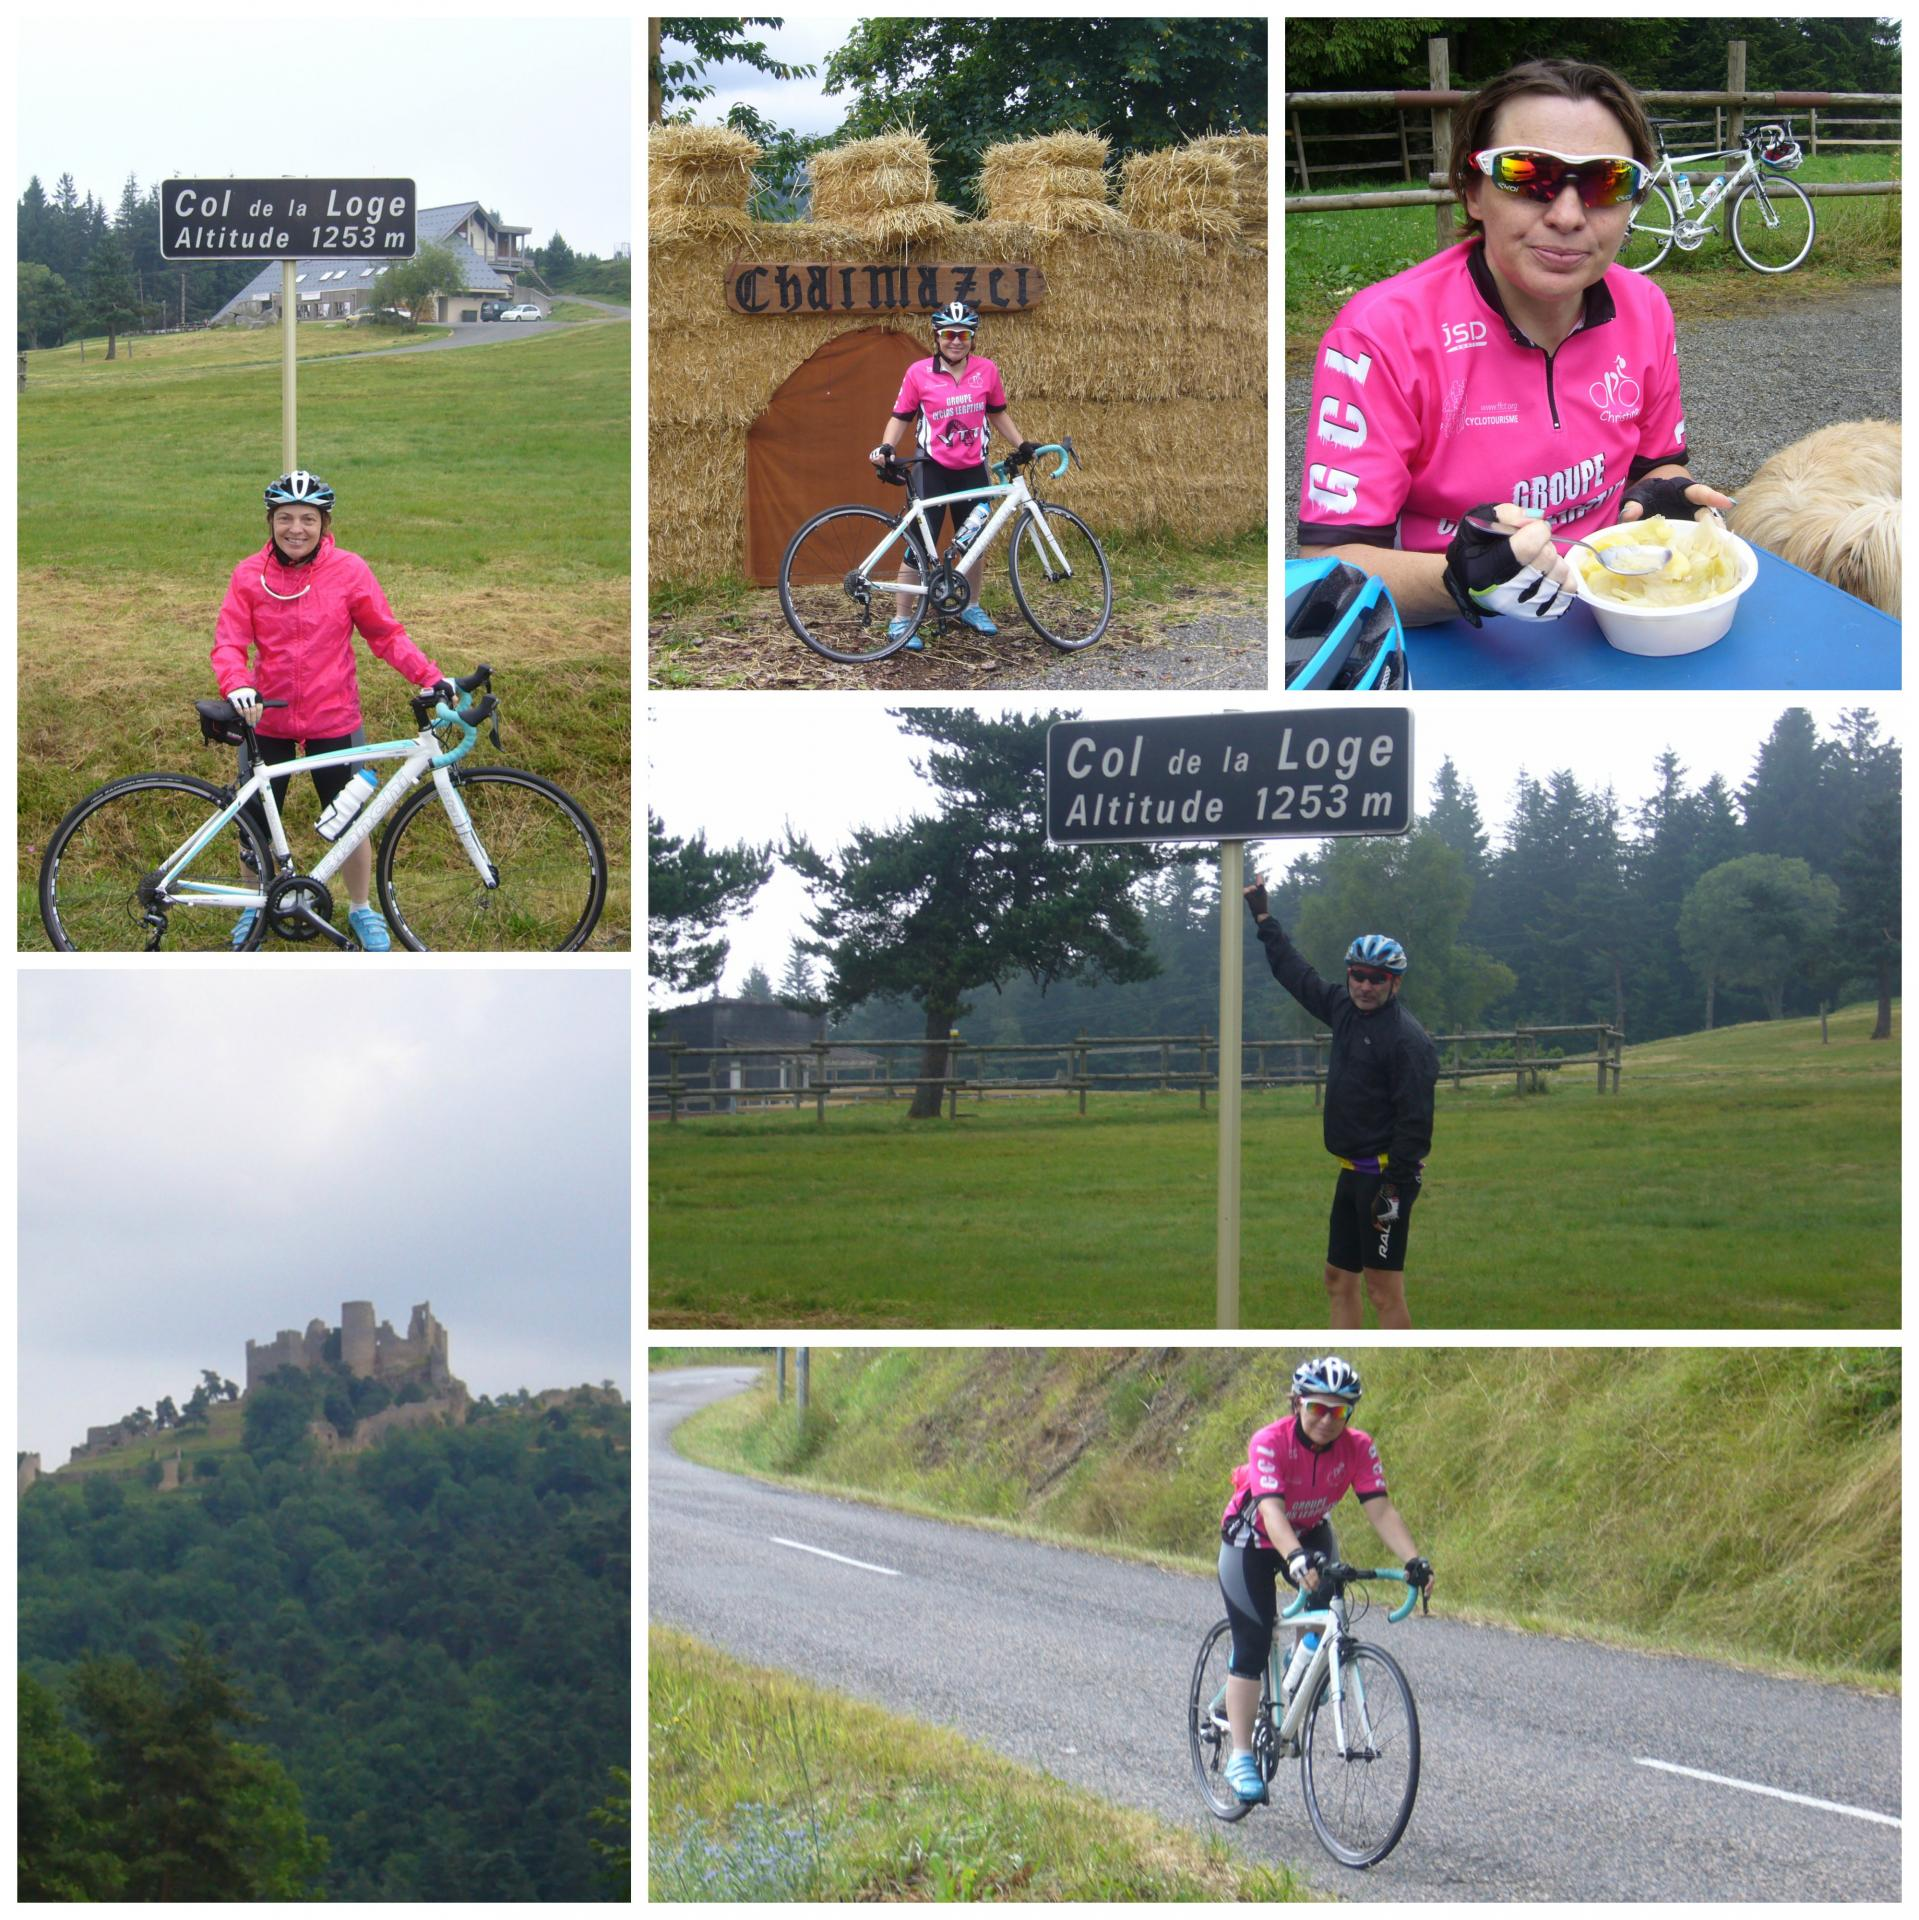 Col de la loge collage